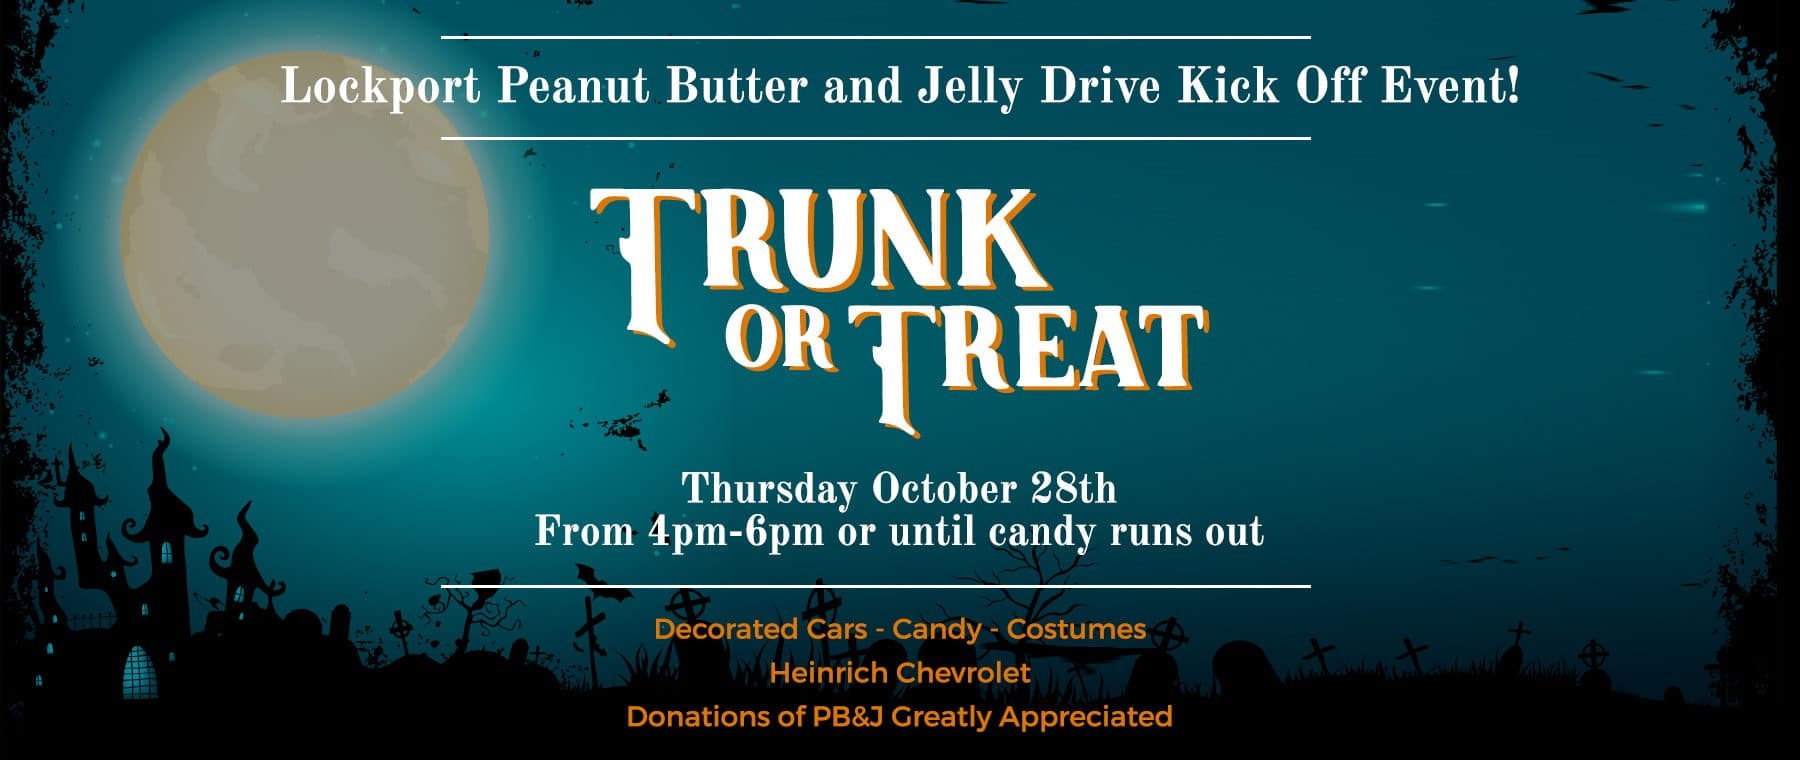 Lockport Peanut Butter and Jelly Drive Kick Off Event!